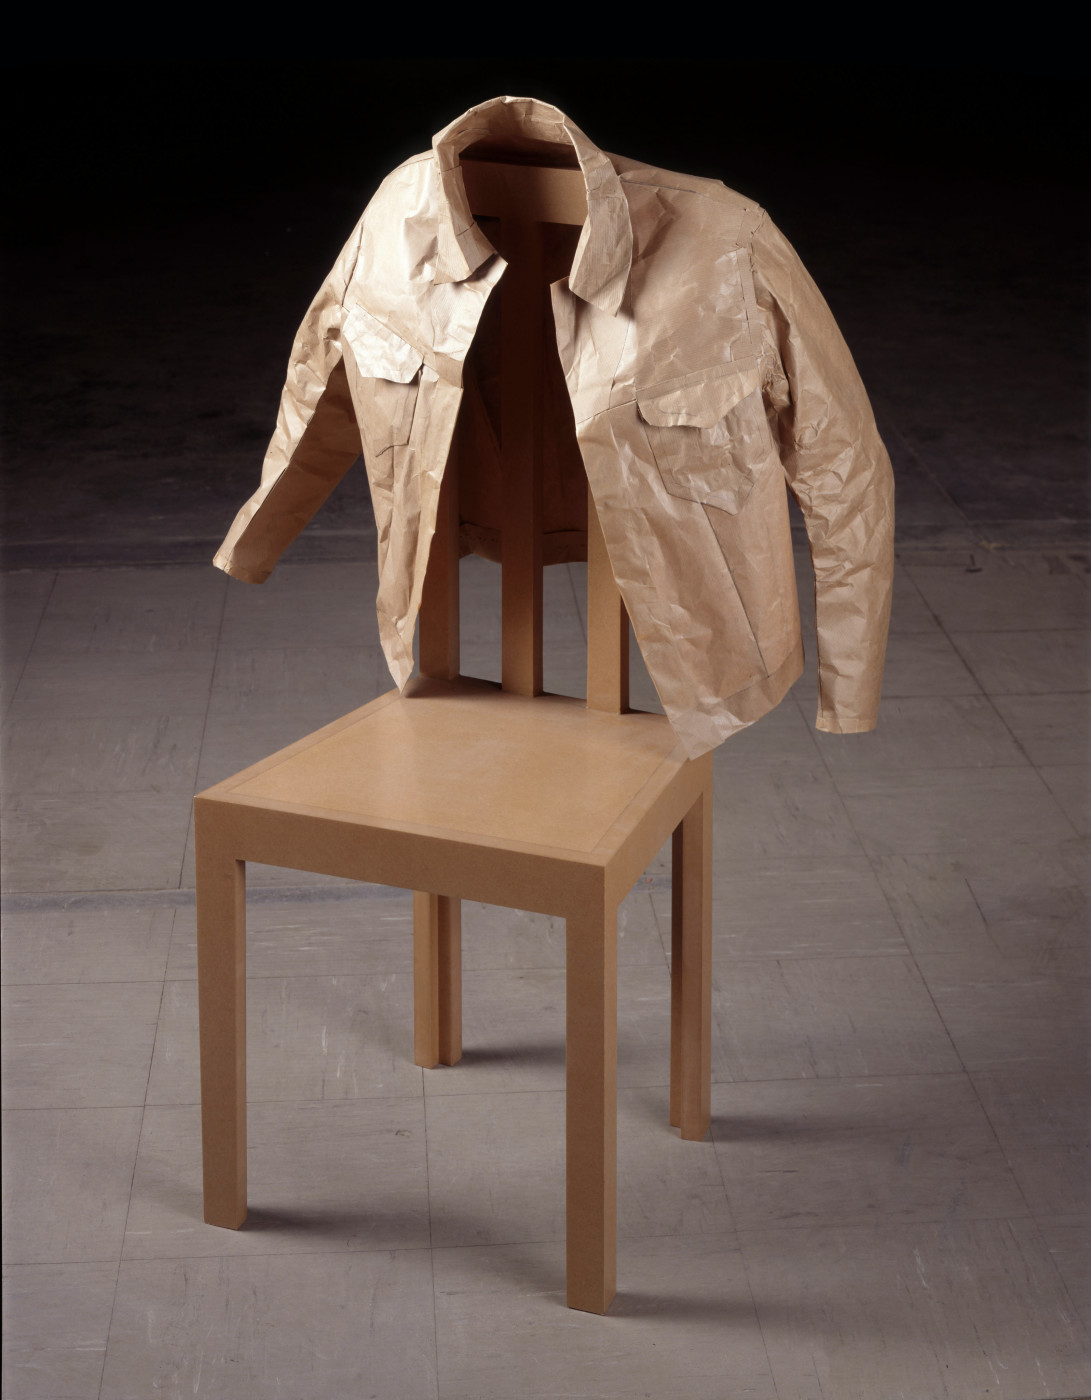 <div class=&#34;title&#34;><em>Auto-erotic</em>, 1997</div><div class=&#34;medium&#34;>brown paper jacket, MDF chair</div><div class=&#34;dimensions&#34;>70 x 85 x 13 cm</div><div class=&#34;dimensions&#34;>27 &#189; x 33 &#189; x 5 in.</div>